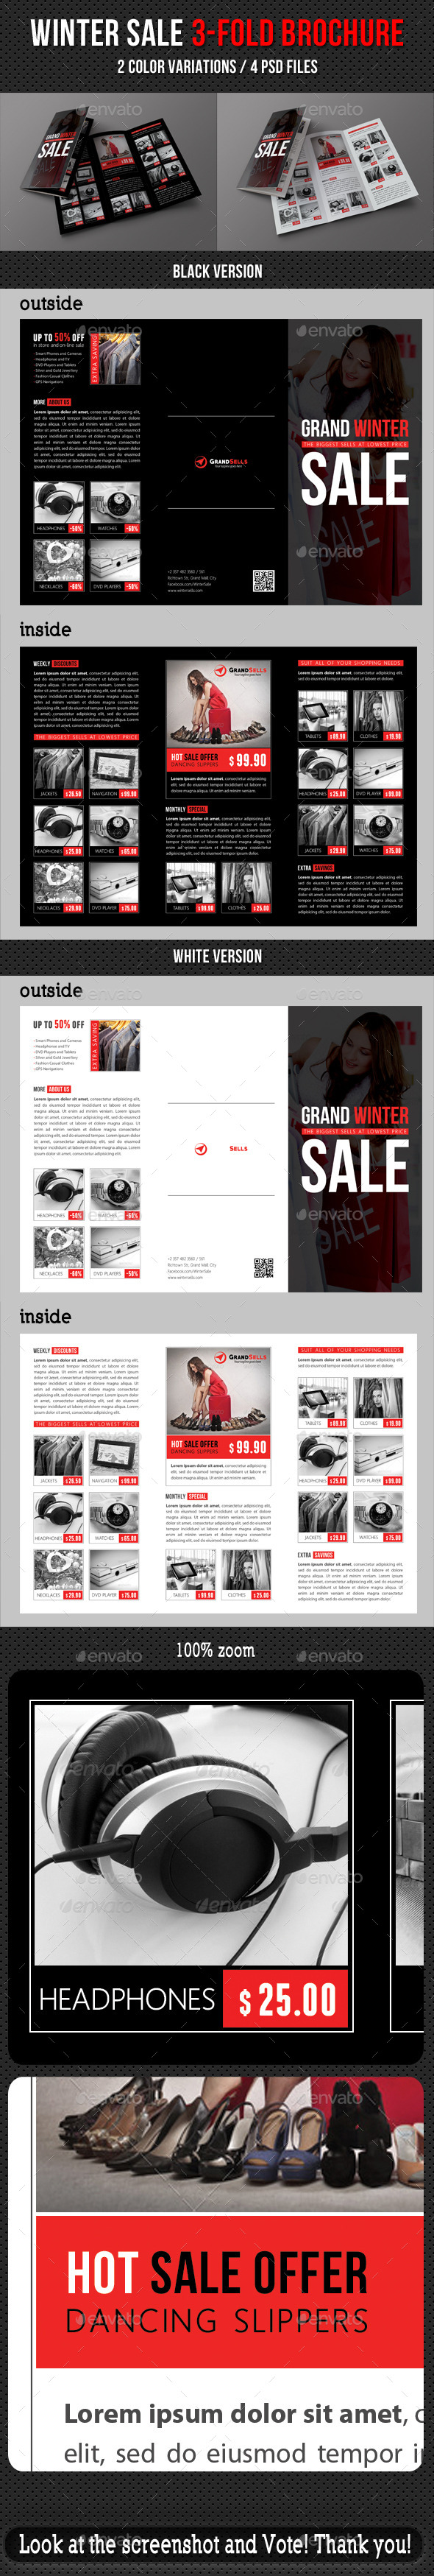 Winter Sale 3-Fold Brochure - Corporate Brochures